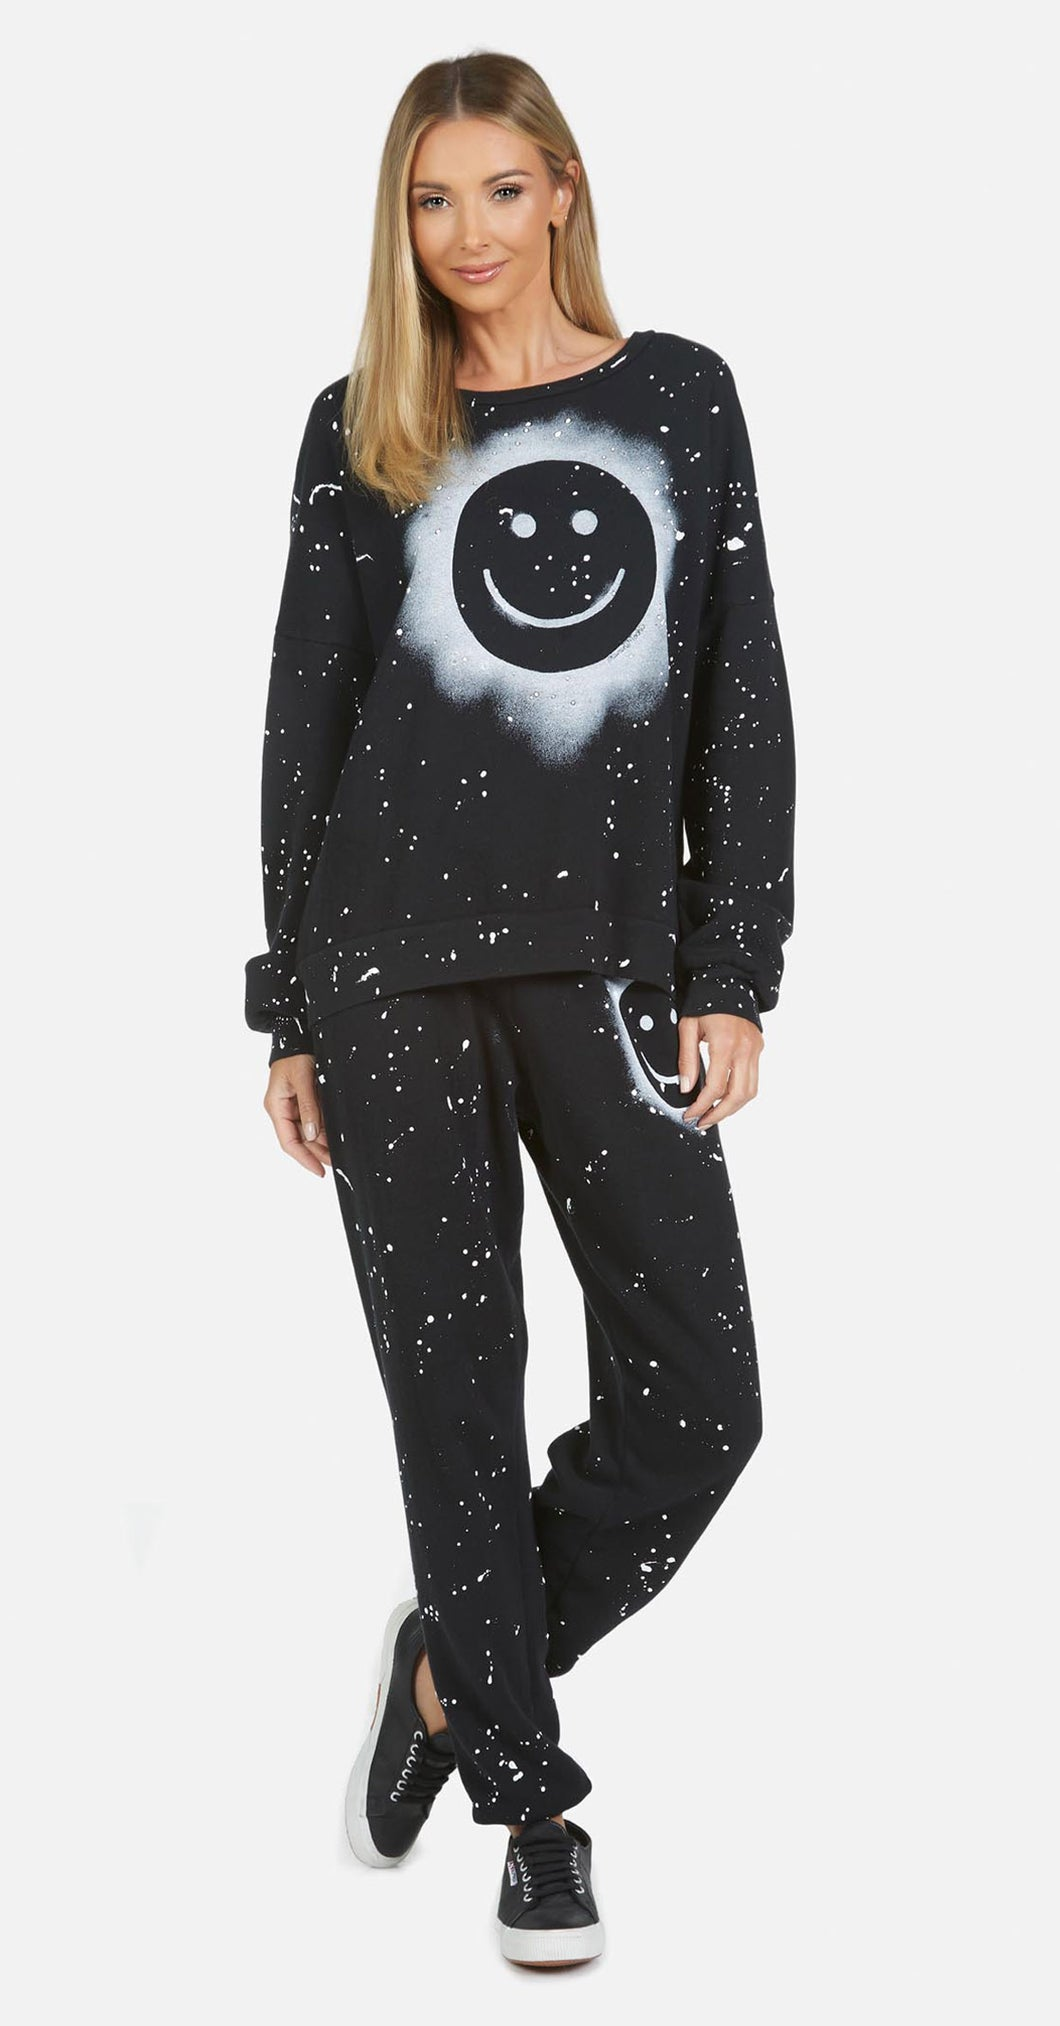 LM Tanzy Long Pant Air Brush Smiley Black/White Splatter